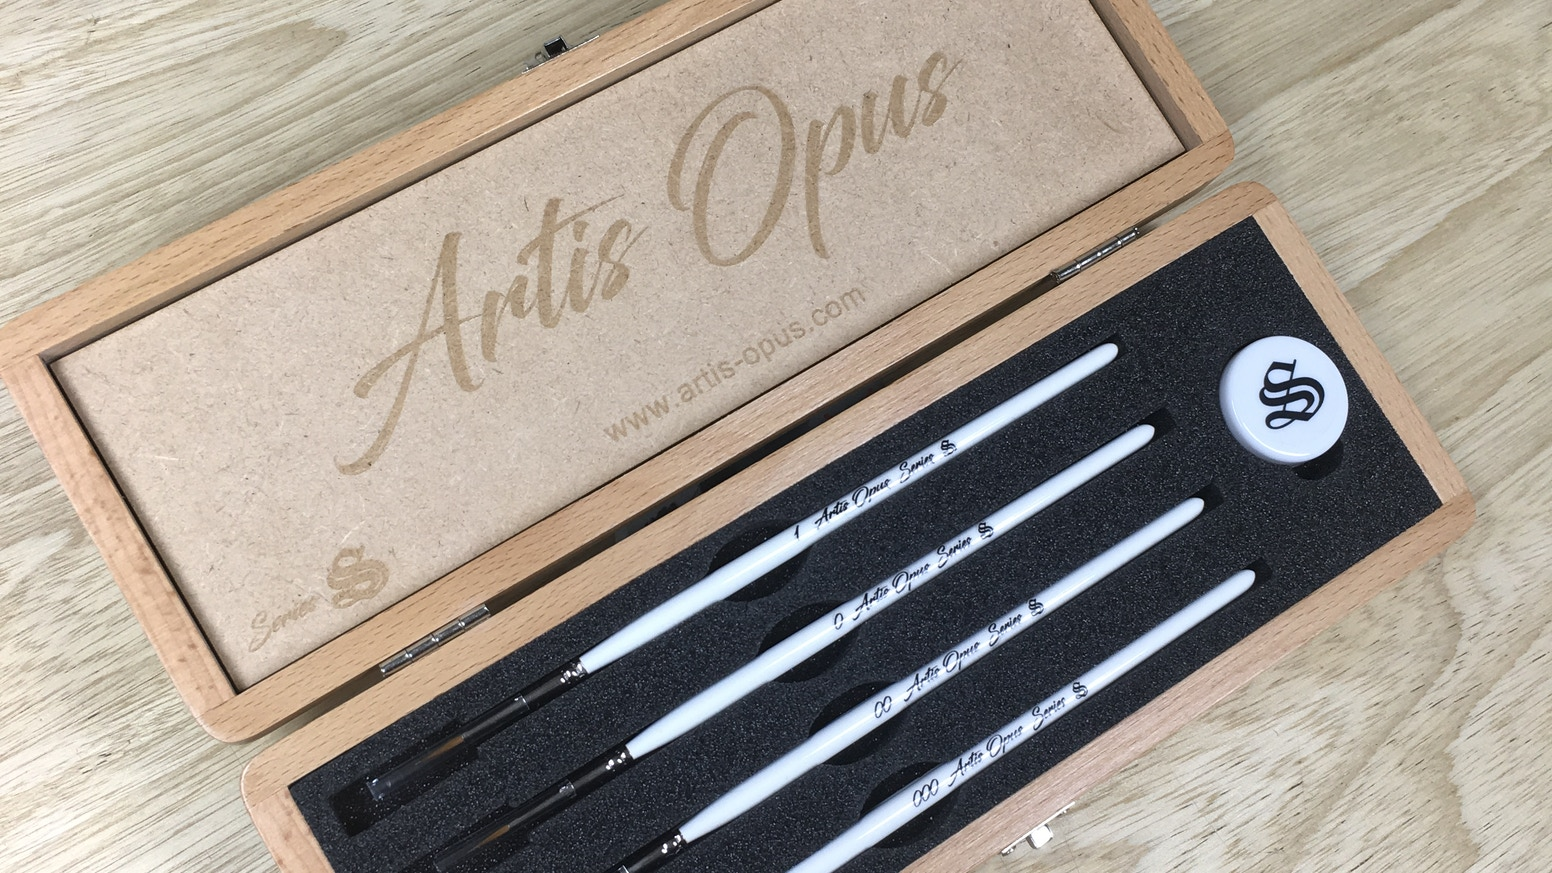 The finest brushes for passionate artists, hand crafted by artisans using true Kolinsky Sable